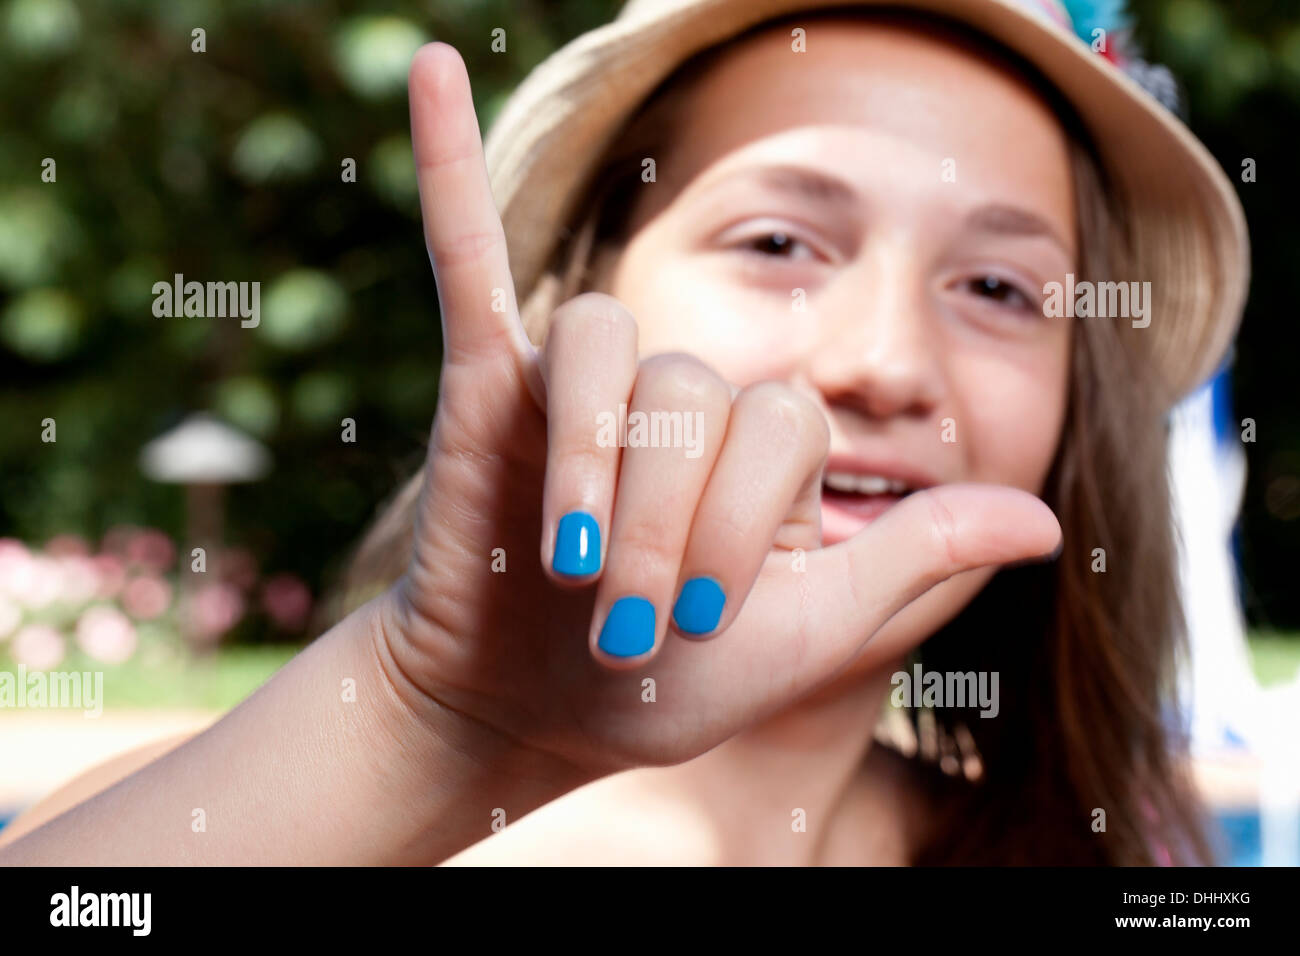 Girl with painted finger nails - Stock Image